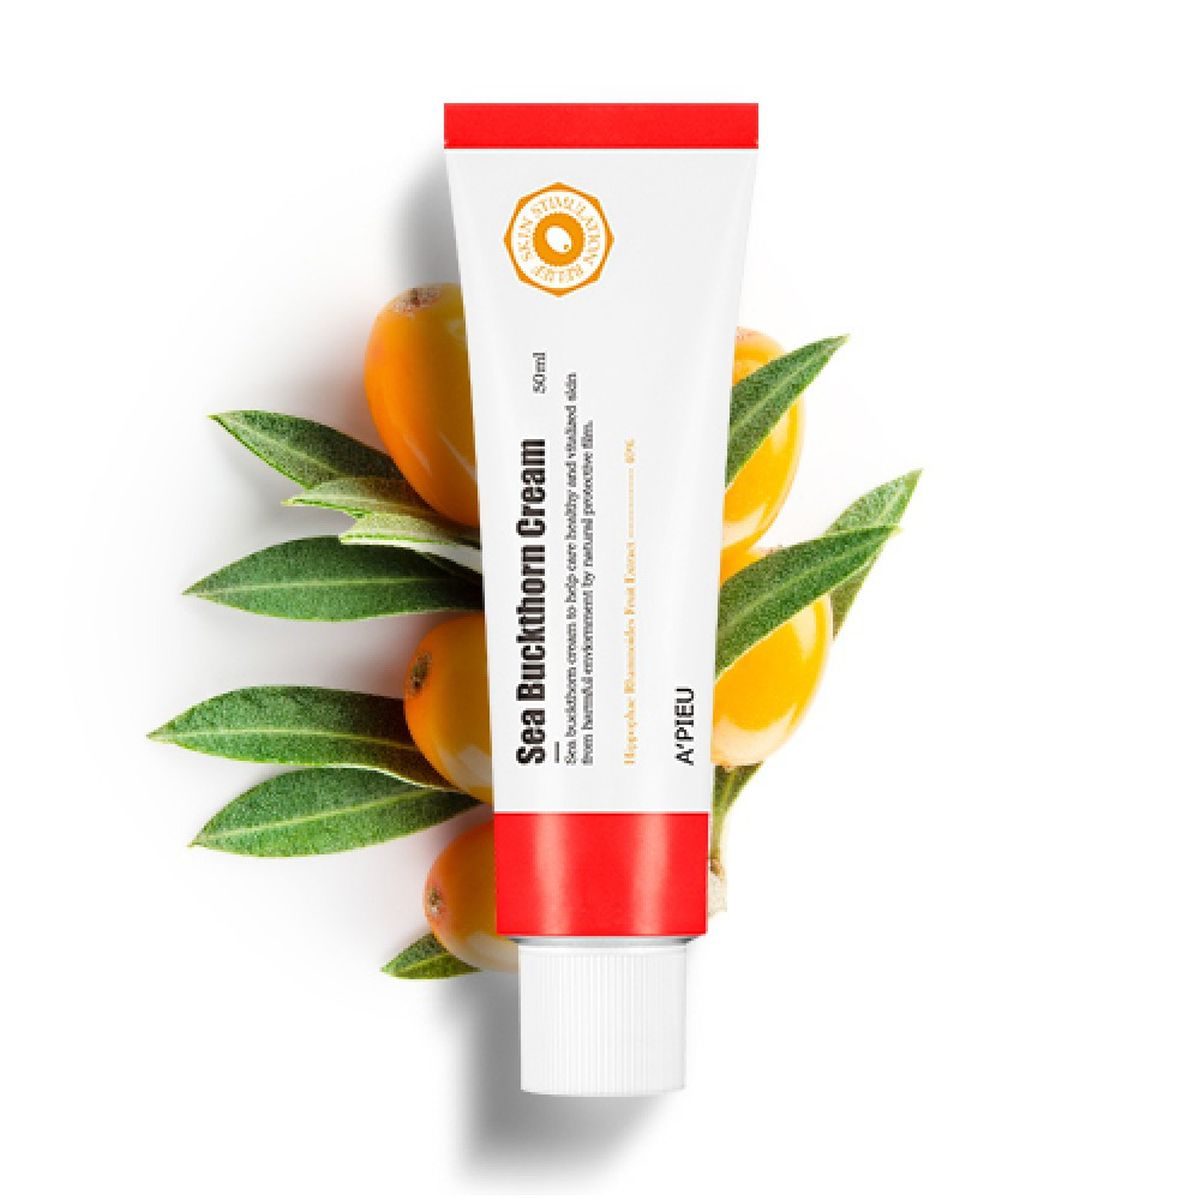 Восстанавливающий крем с облепихой A'PIEU Sea Buckthorn Cream - 50 мл